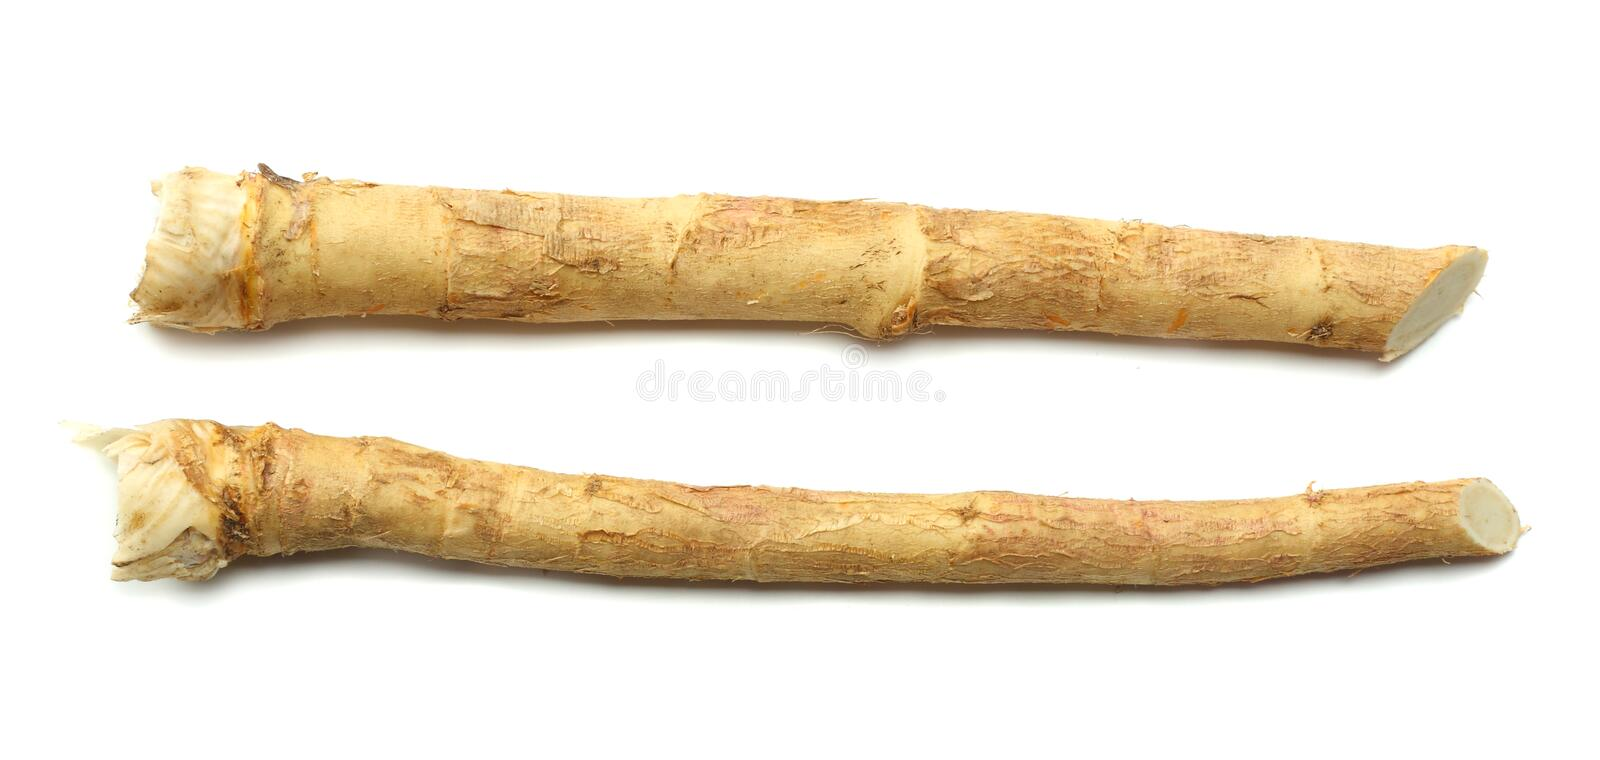 Two horseradish root isolated on white background royalty free stock photo